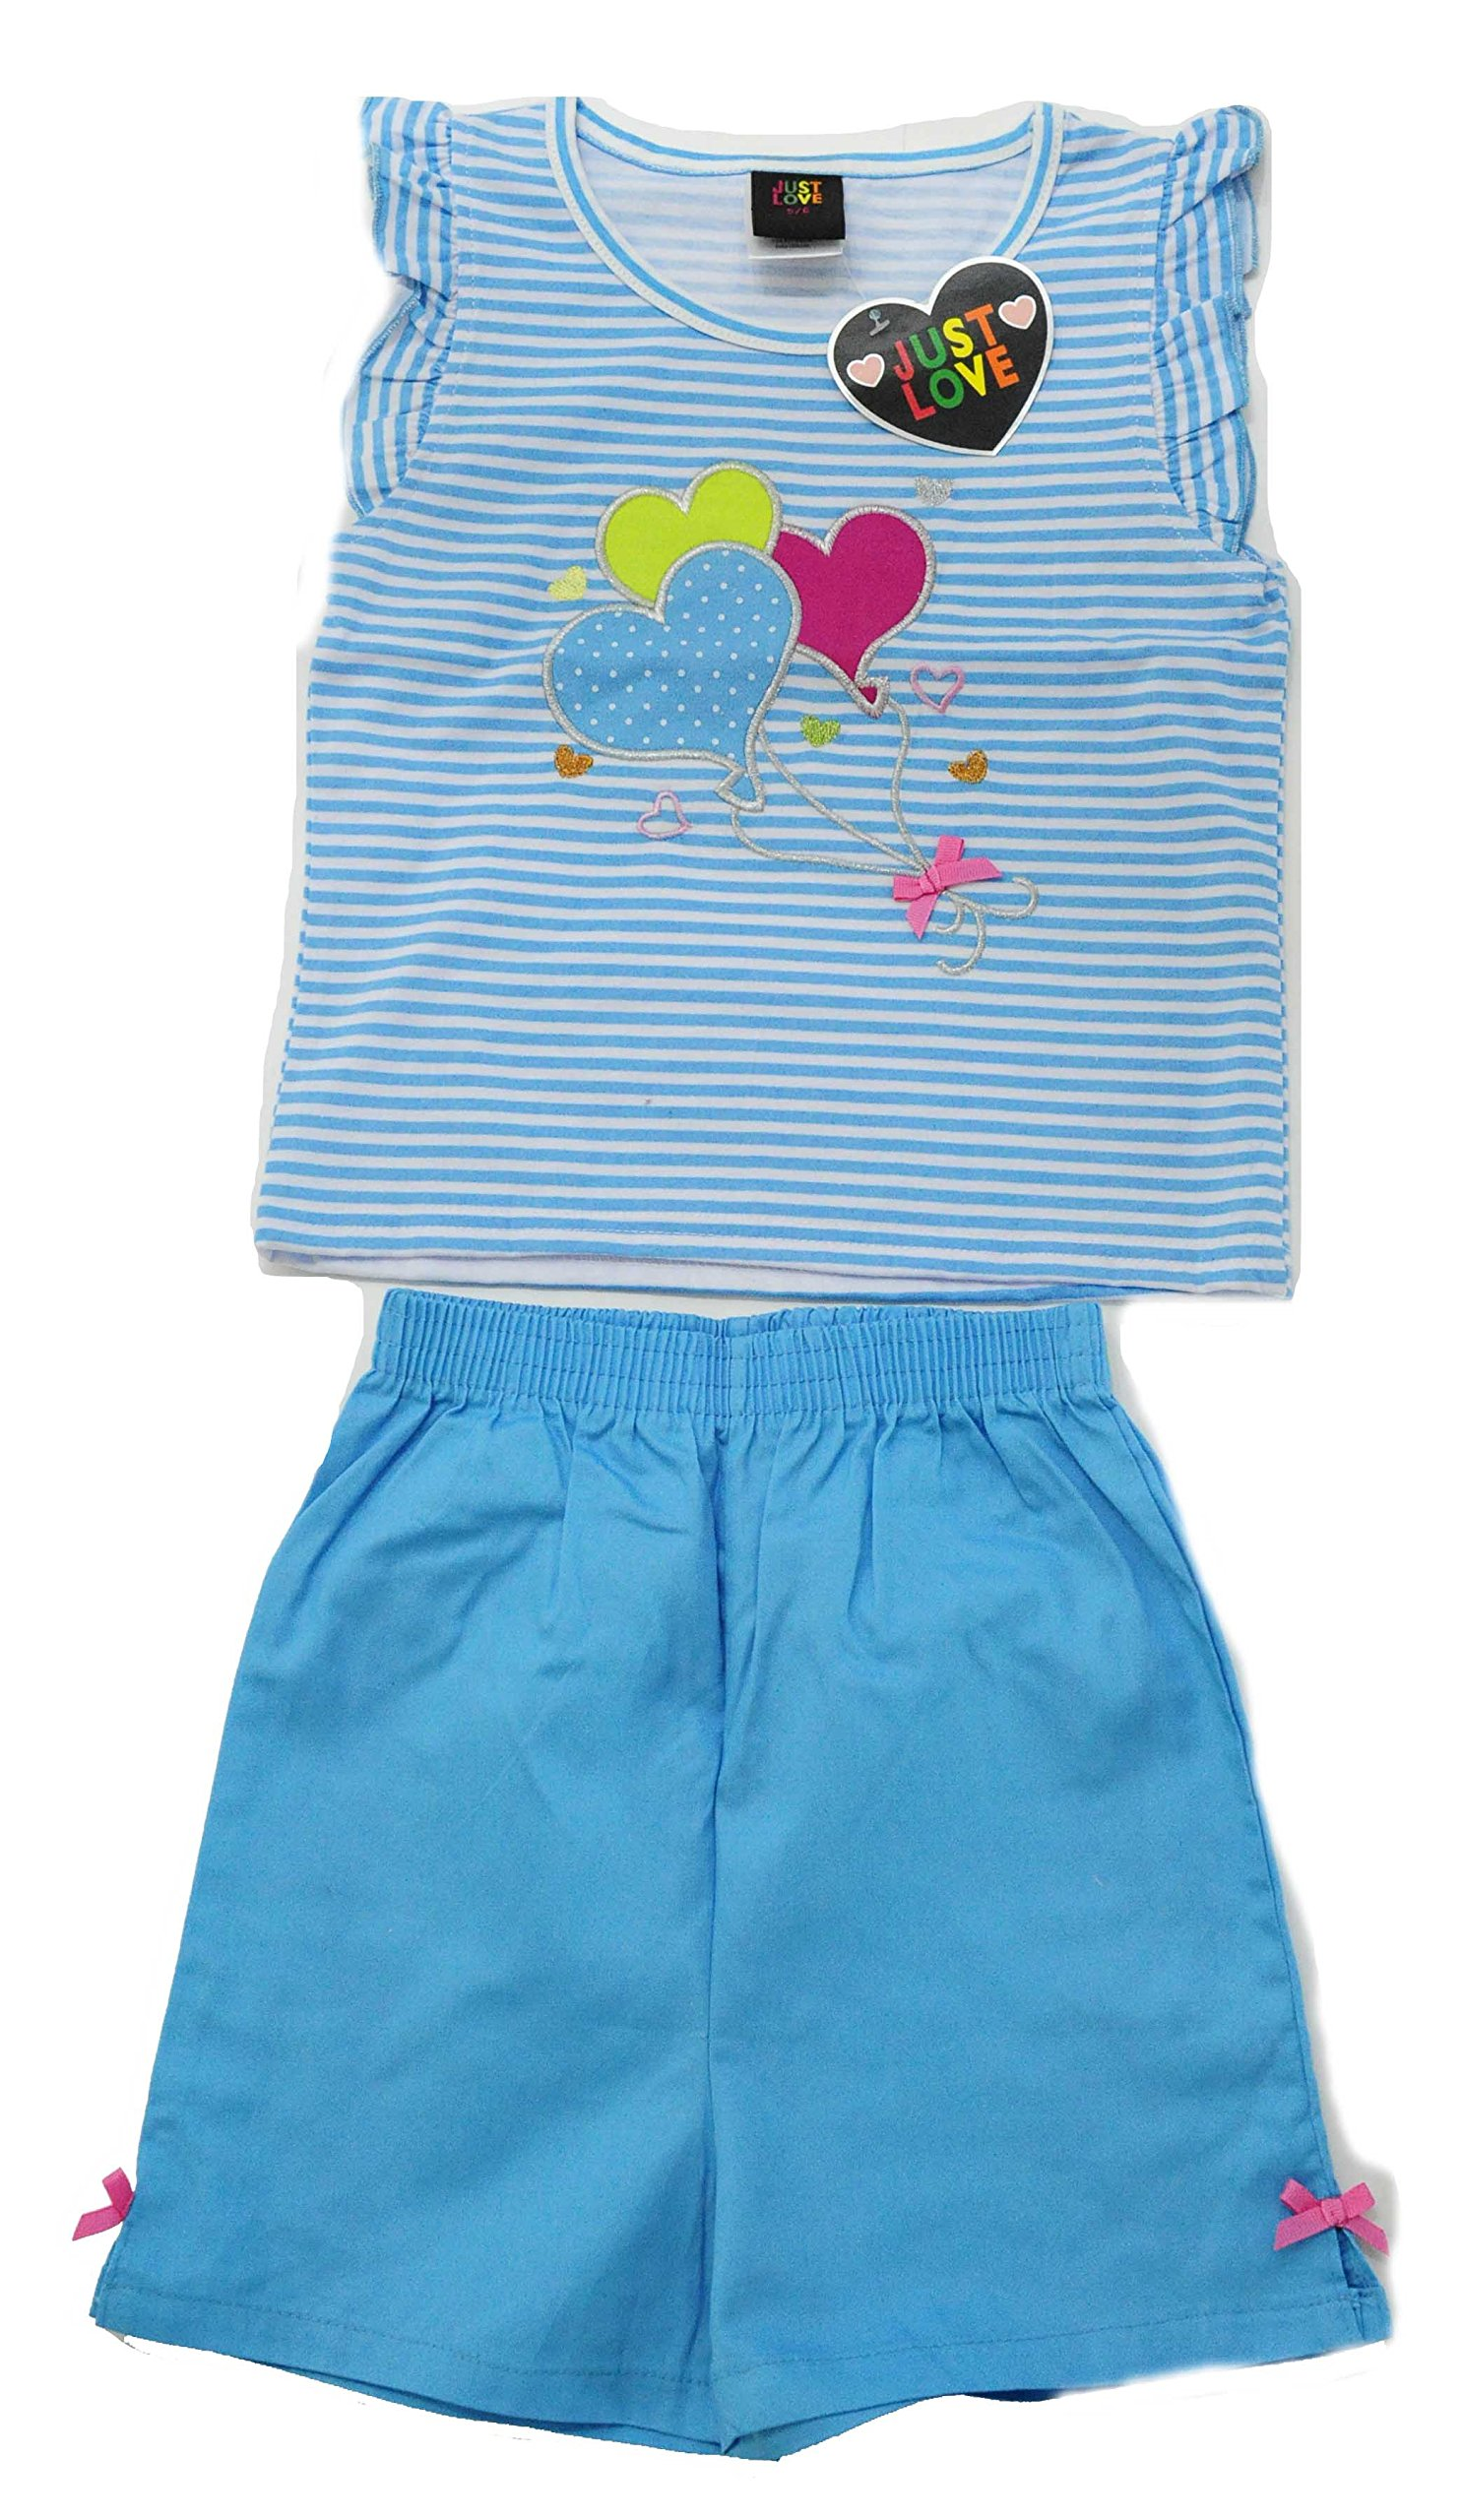 Just Love 4004-5/6 Two Piece Girls Shorts Set